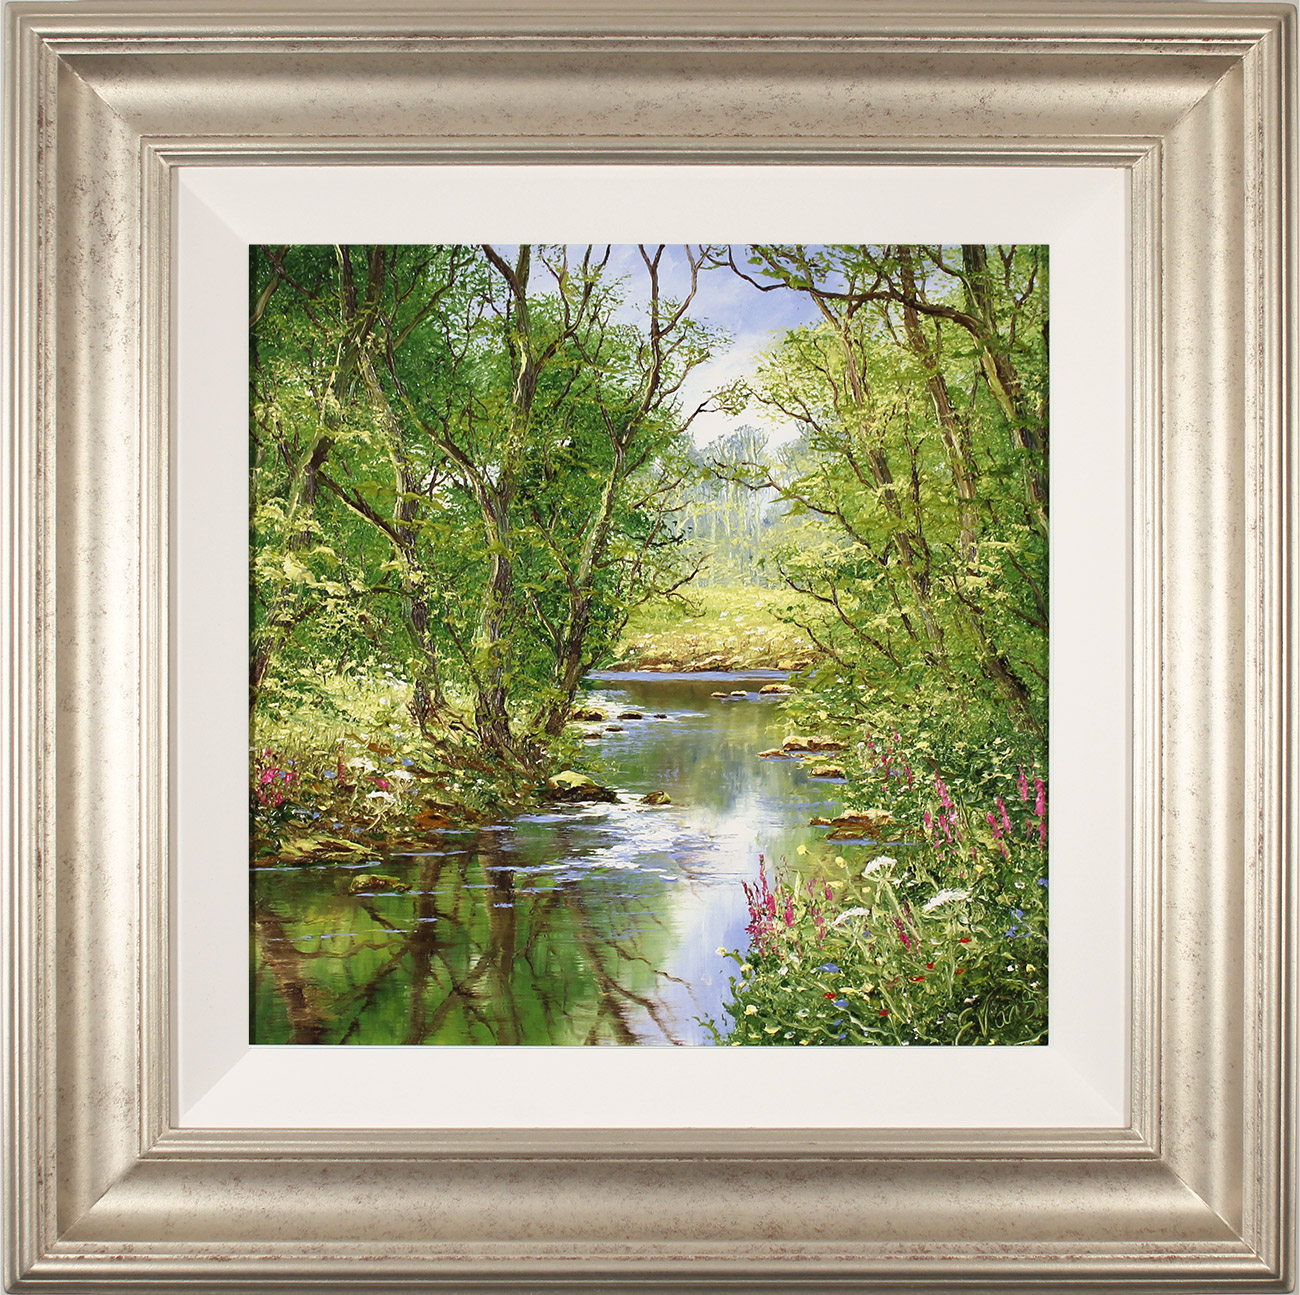 Terry Evans, Original oil painting on panel, Quiet of the Wood, click to enlarge